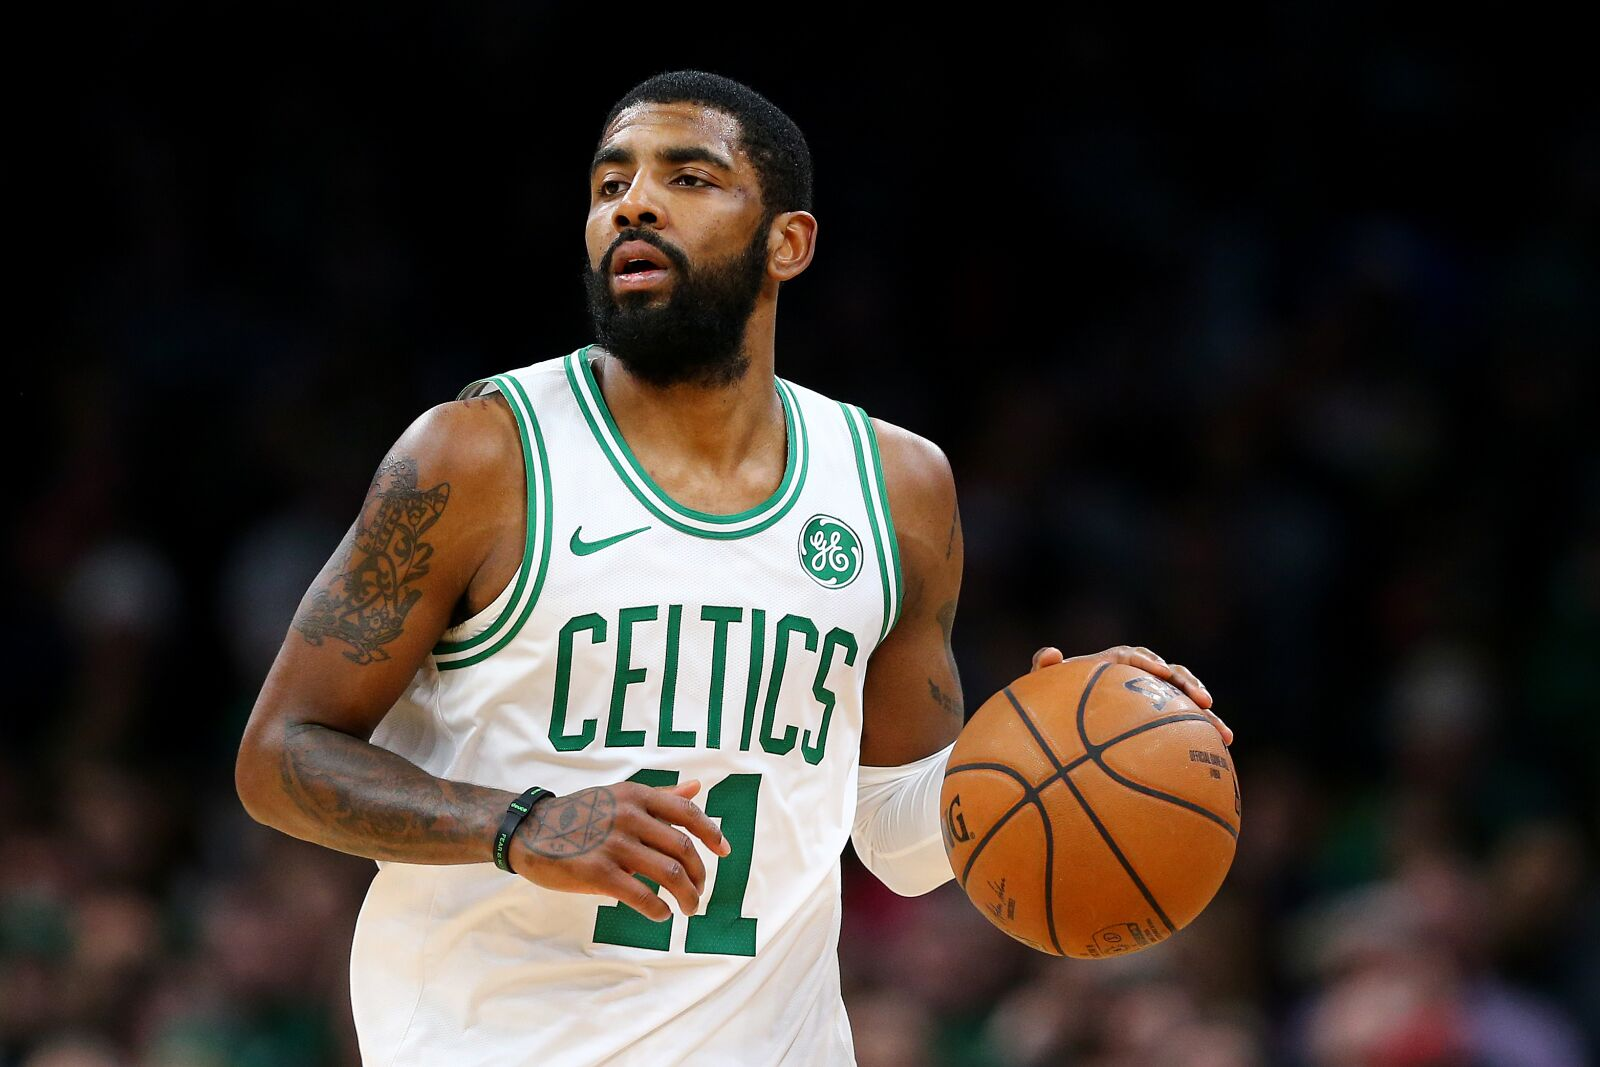 Duke Basketball: Kyrie Irving sets career high in assists in Celtics victory